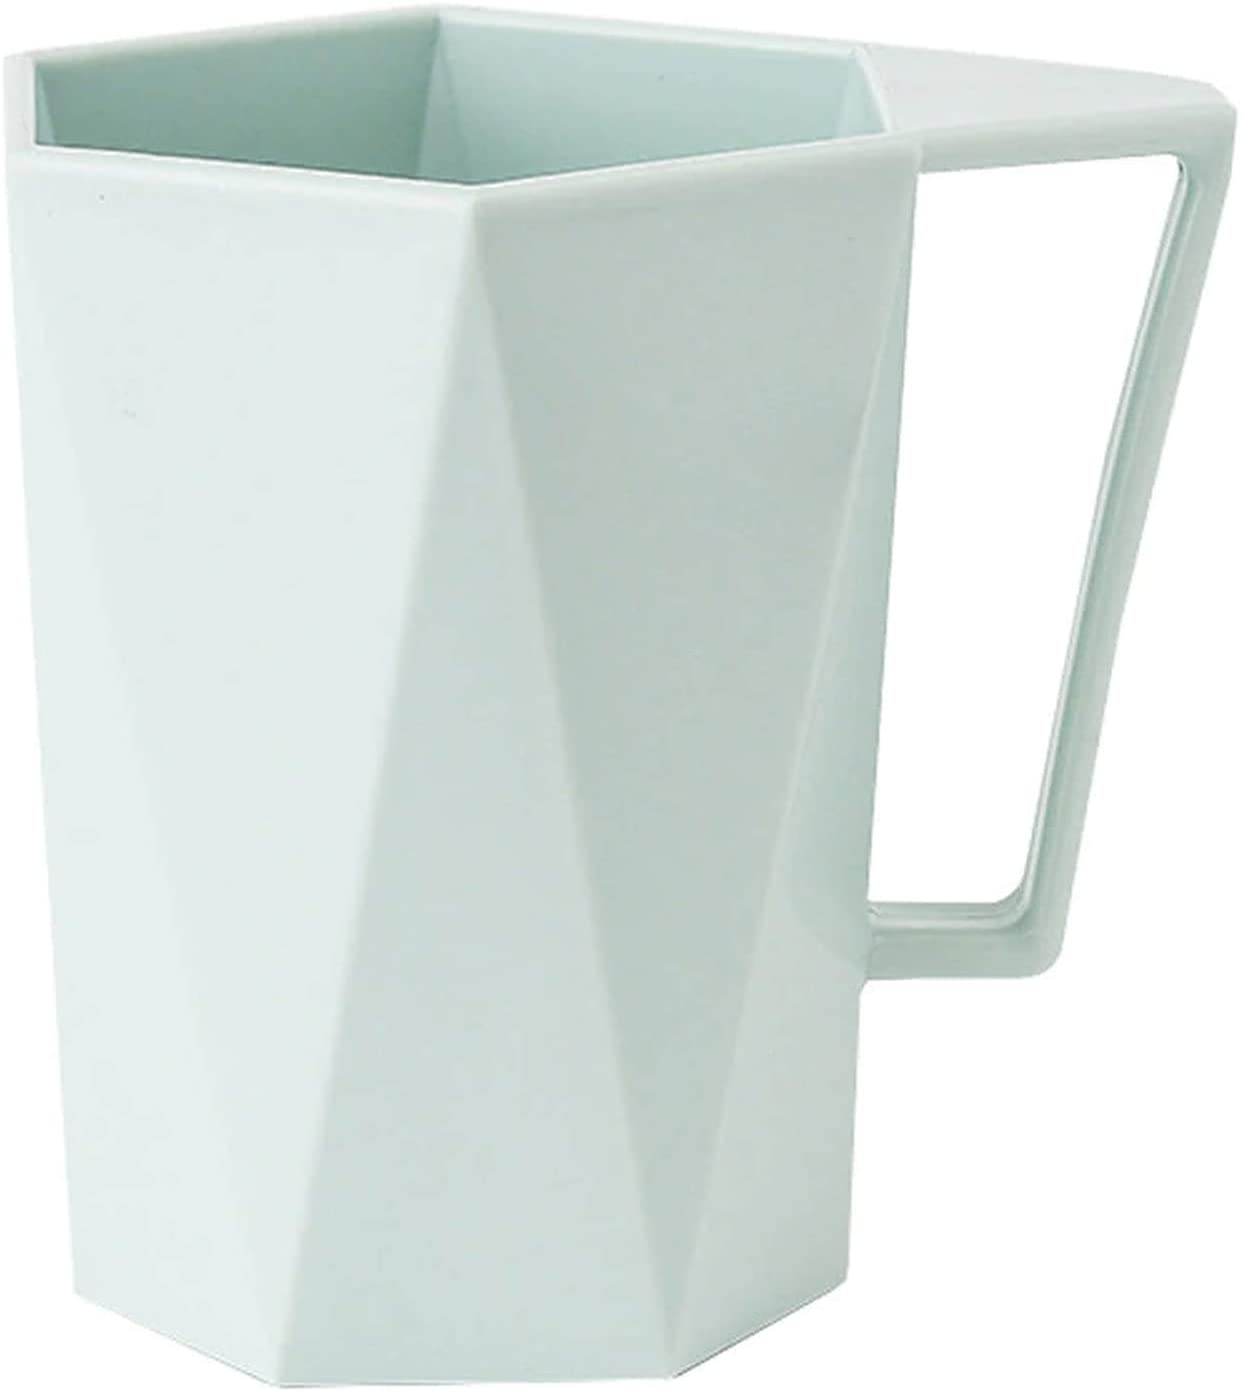 Mailzon Coffe Cups, Water Glass, and Mug - A New 1PC Novelty Cup Personality Glass Milk, Juice, Tea, and Lemon | Reusable Plastic Cup, Ideal Use for Any Occasions and Party (Mint Green, 301-400ml)